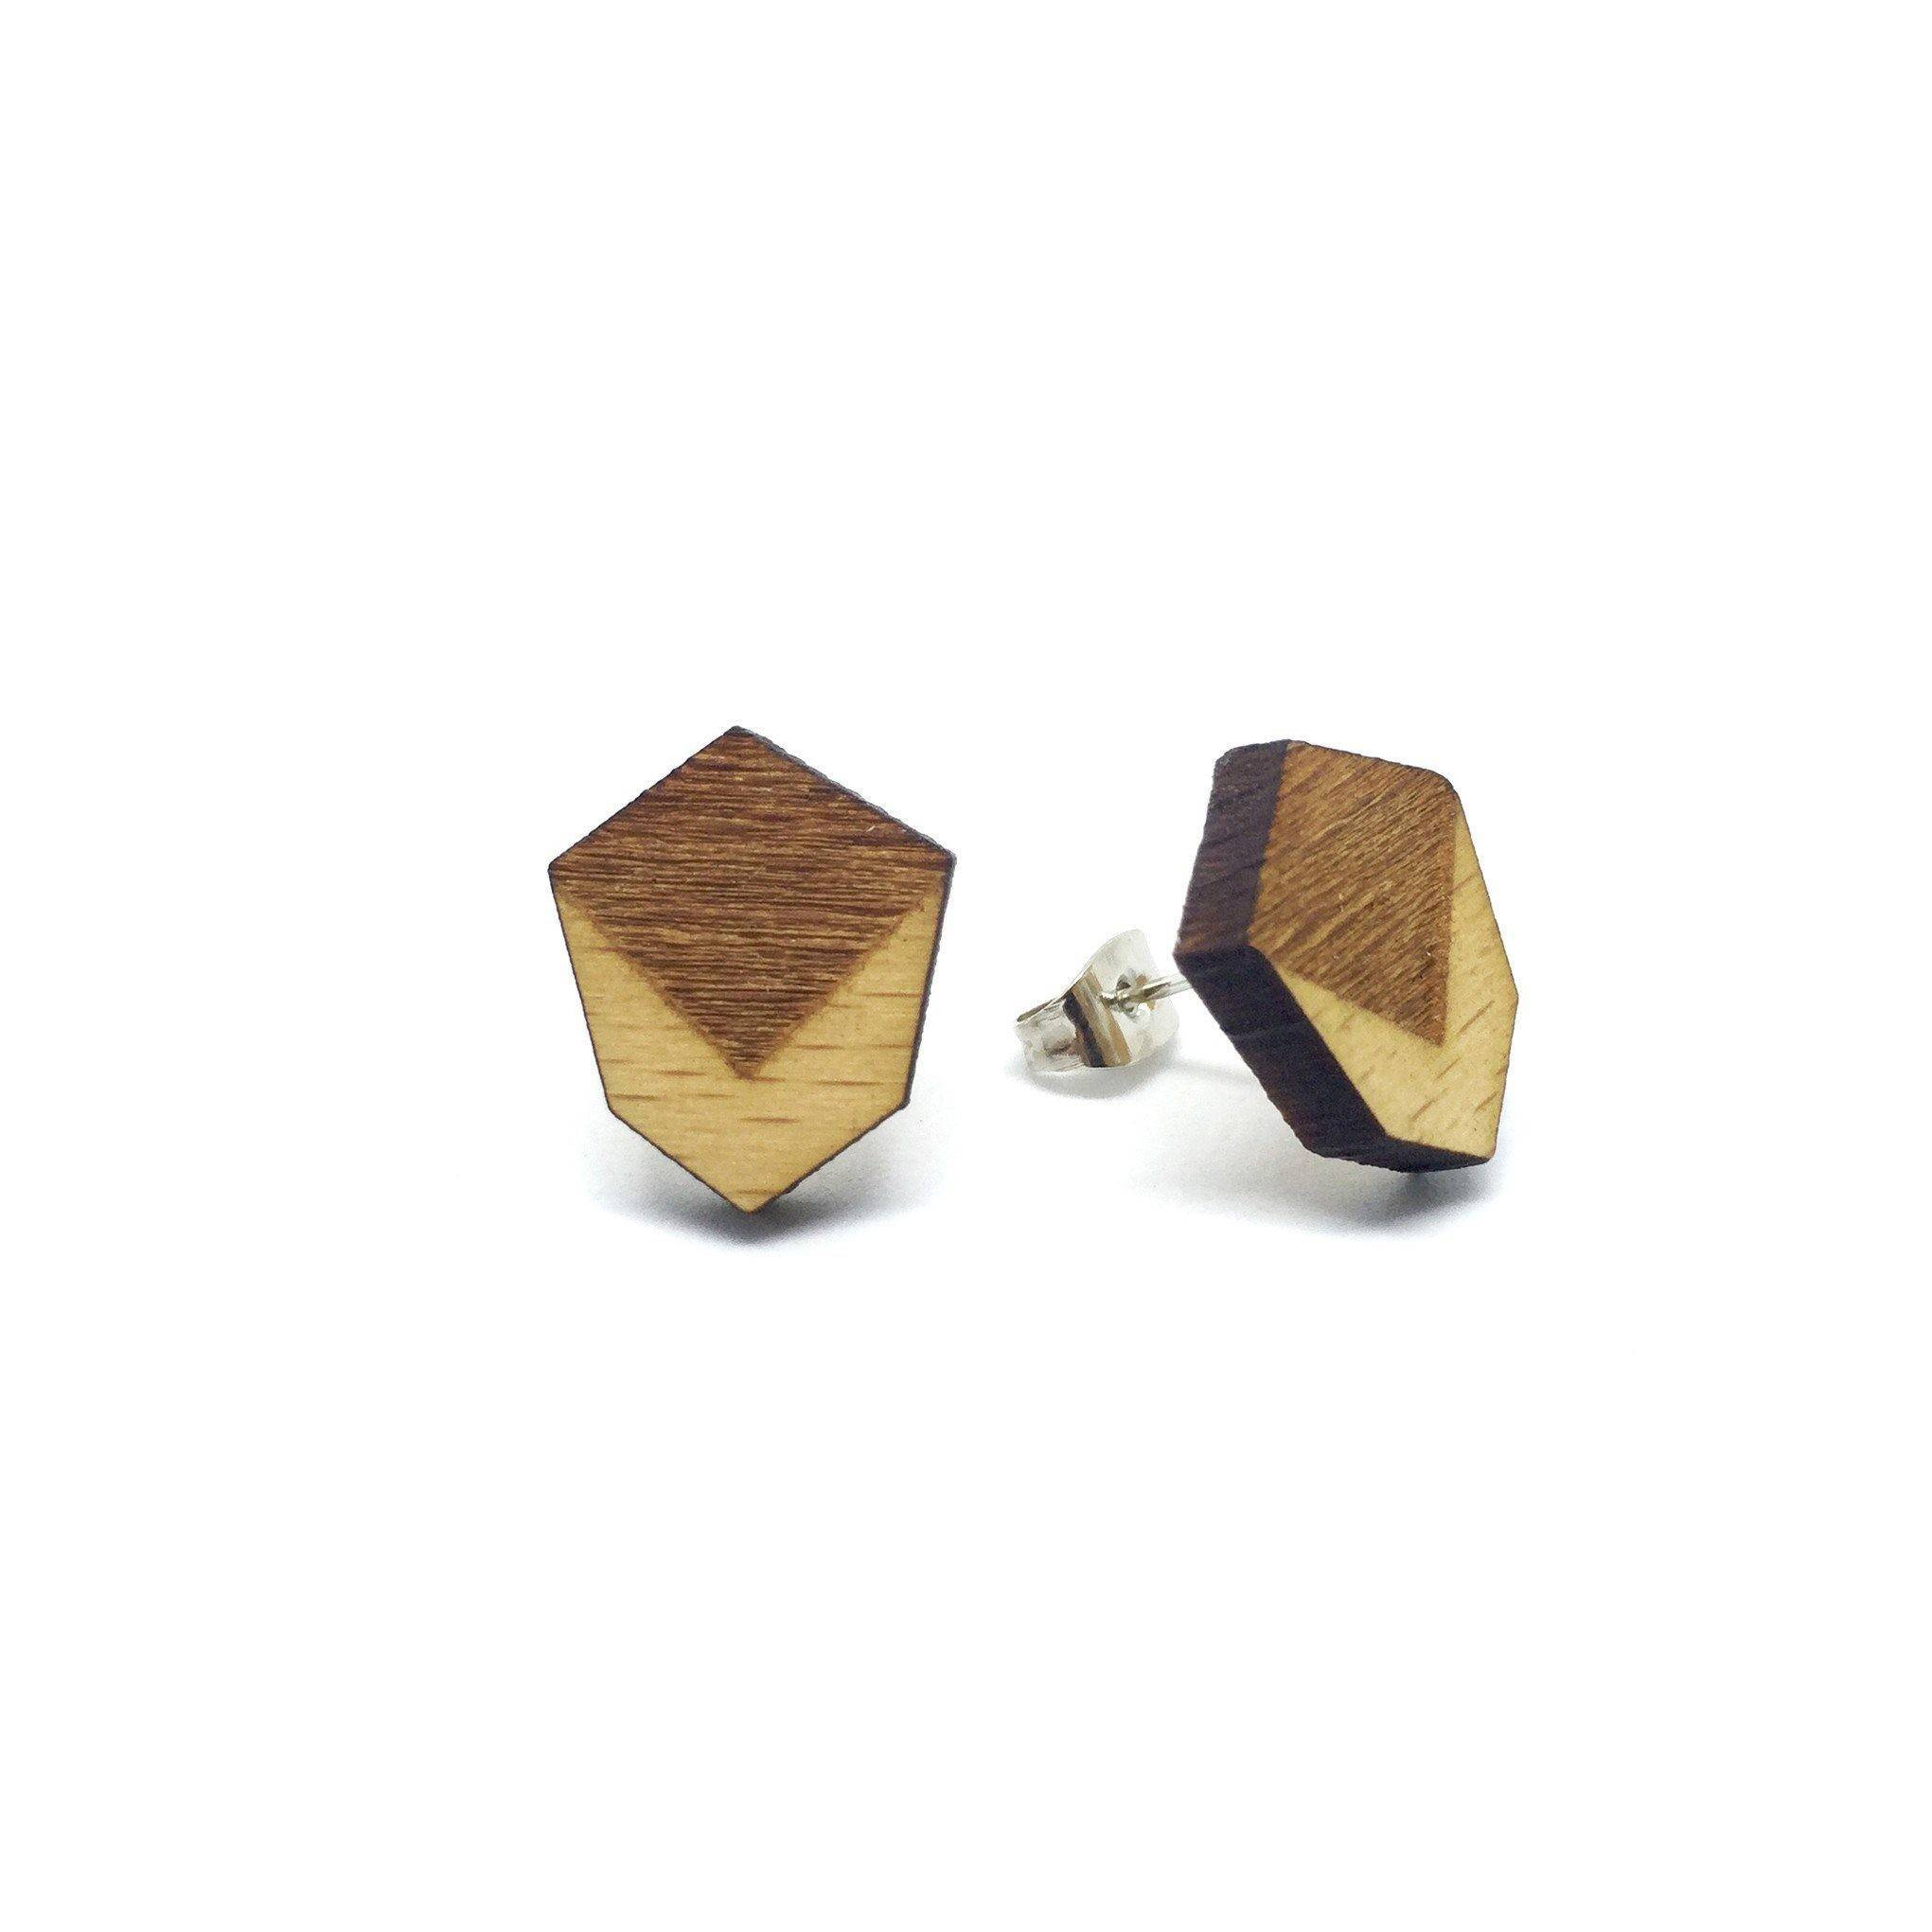 Minimalist Geometric Laser Cut Wood Earrings - Earrings - Paperdaise Accessories - Naiise